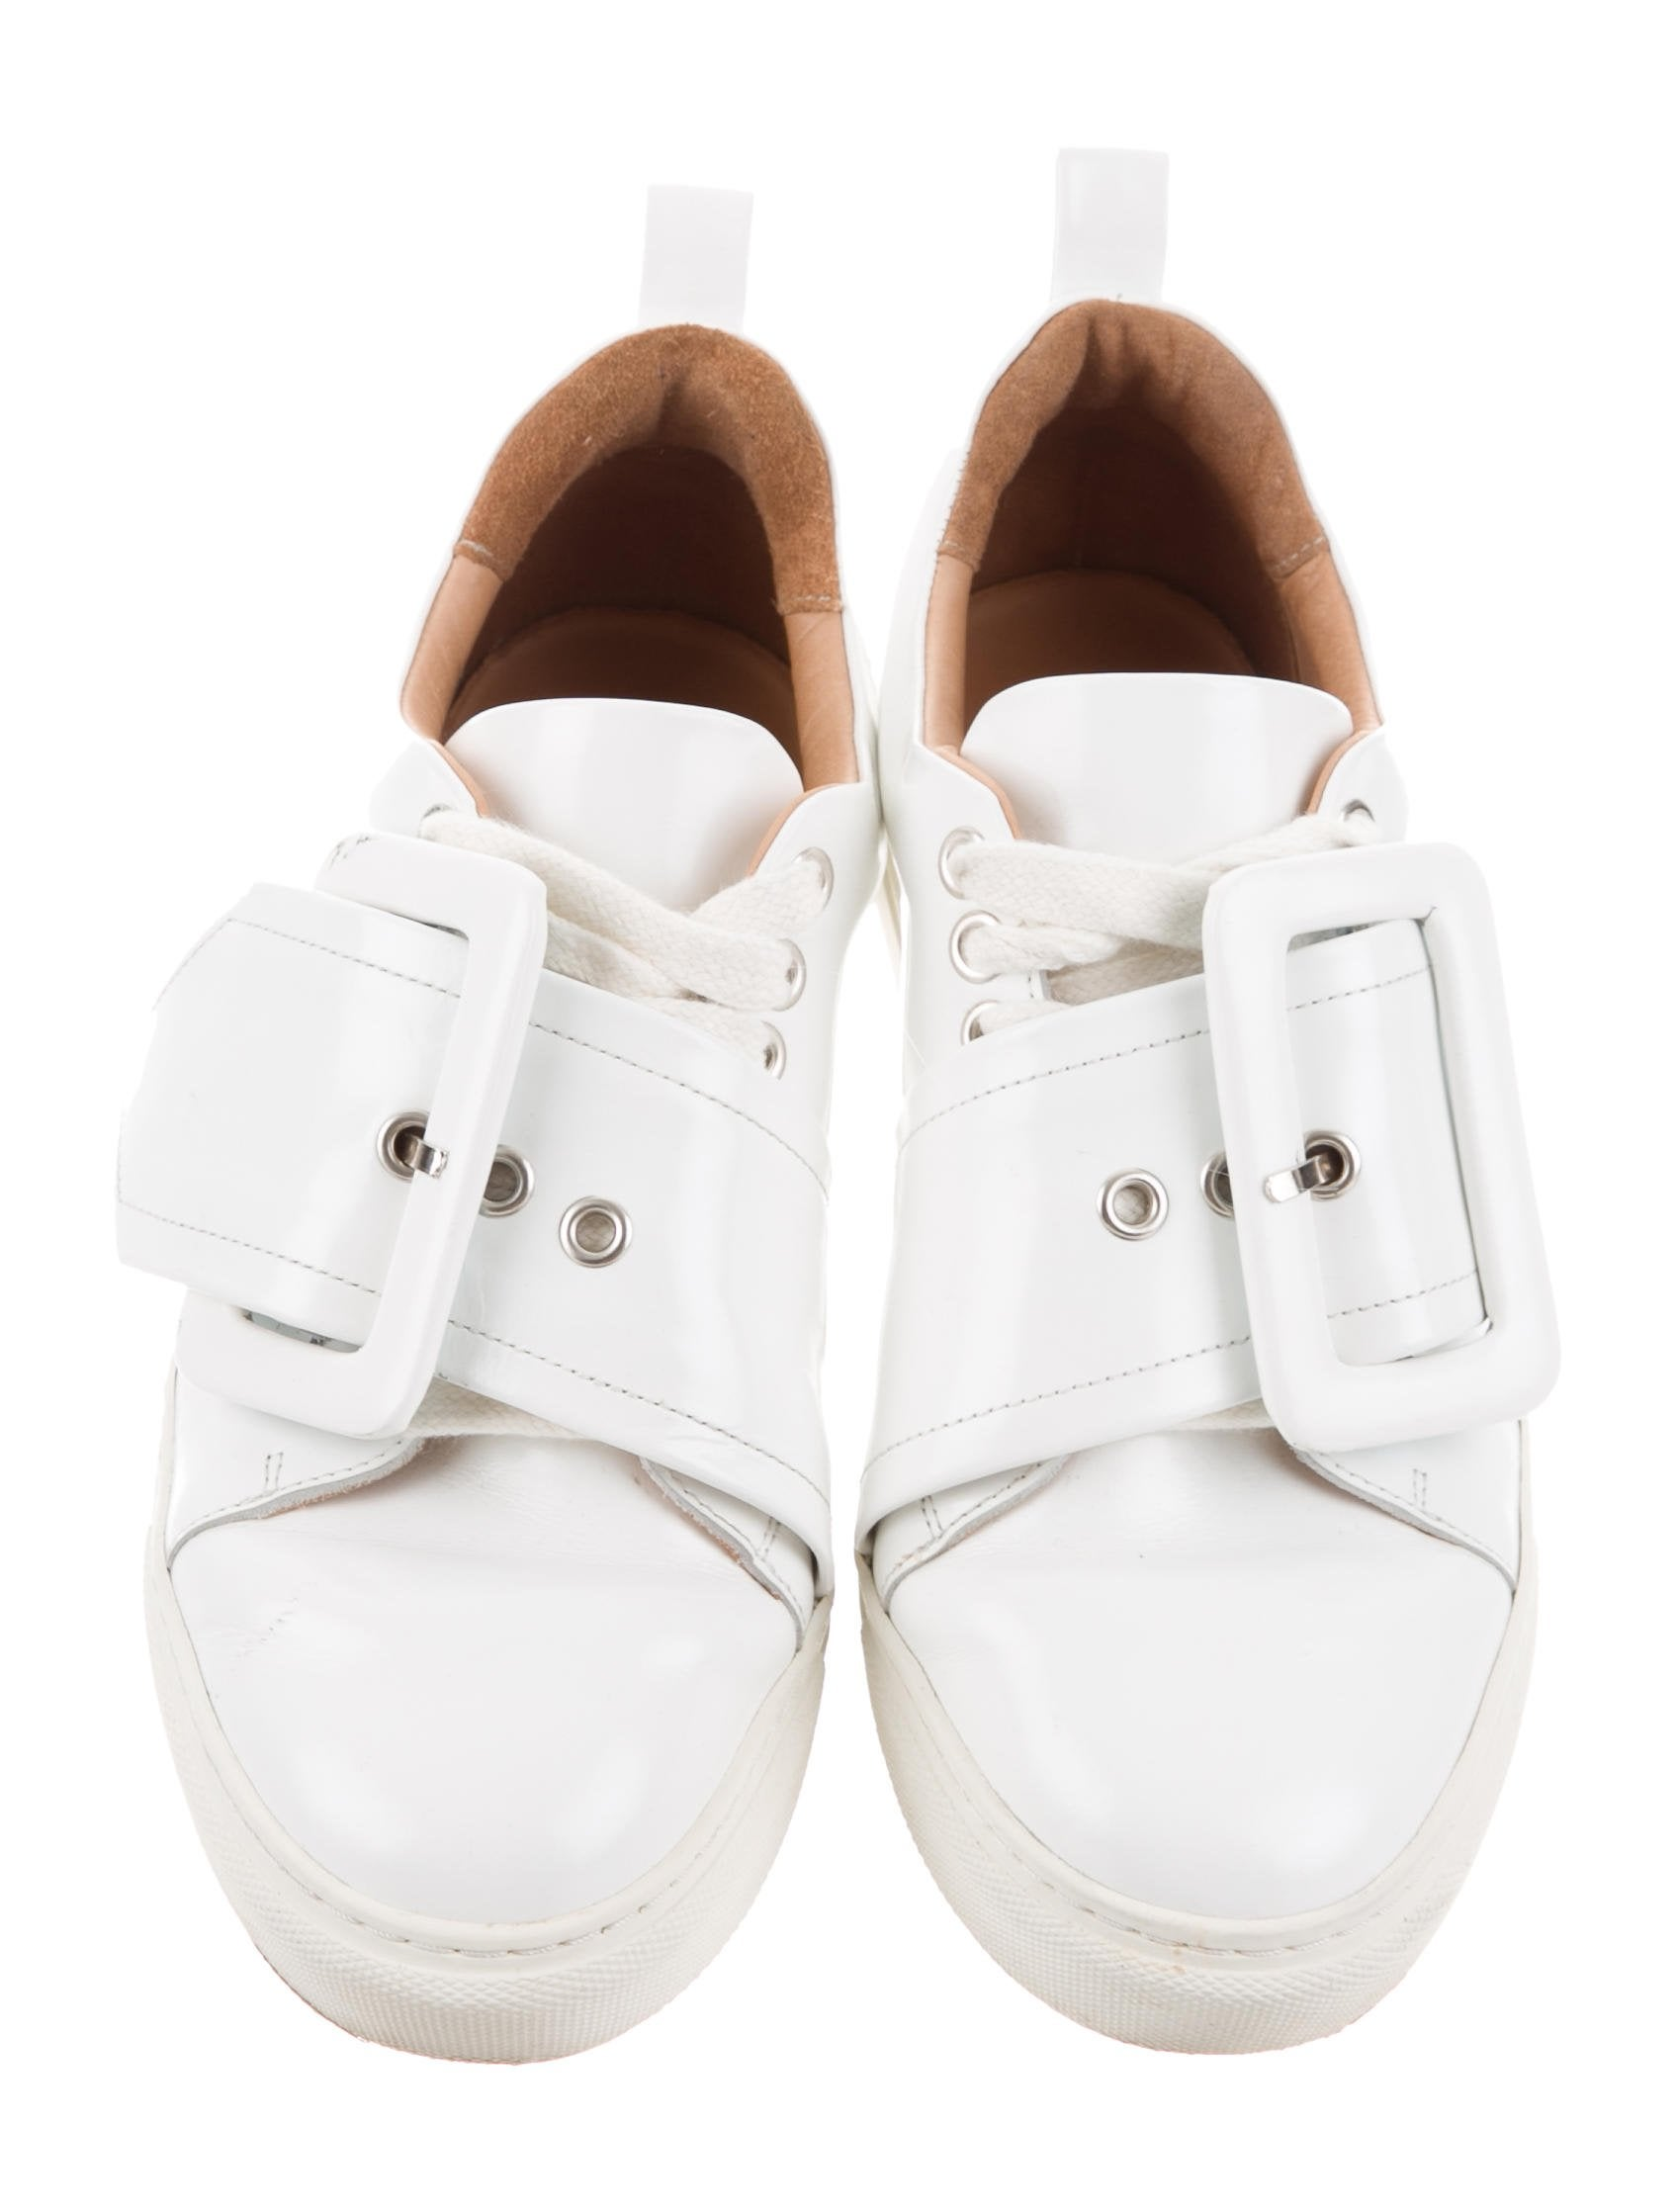 Manchester online in China Marques' Almeida Marques'Almeida Buckle Low-Top Sneakers sale geniue stockist online cheap price really HfURaEK